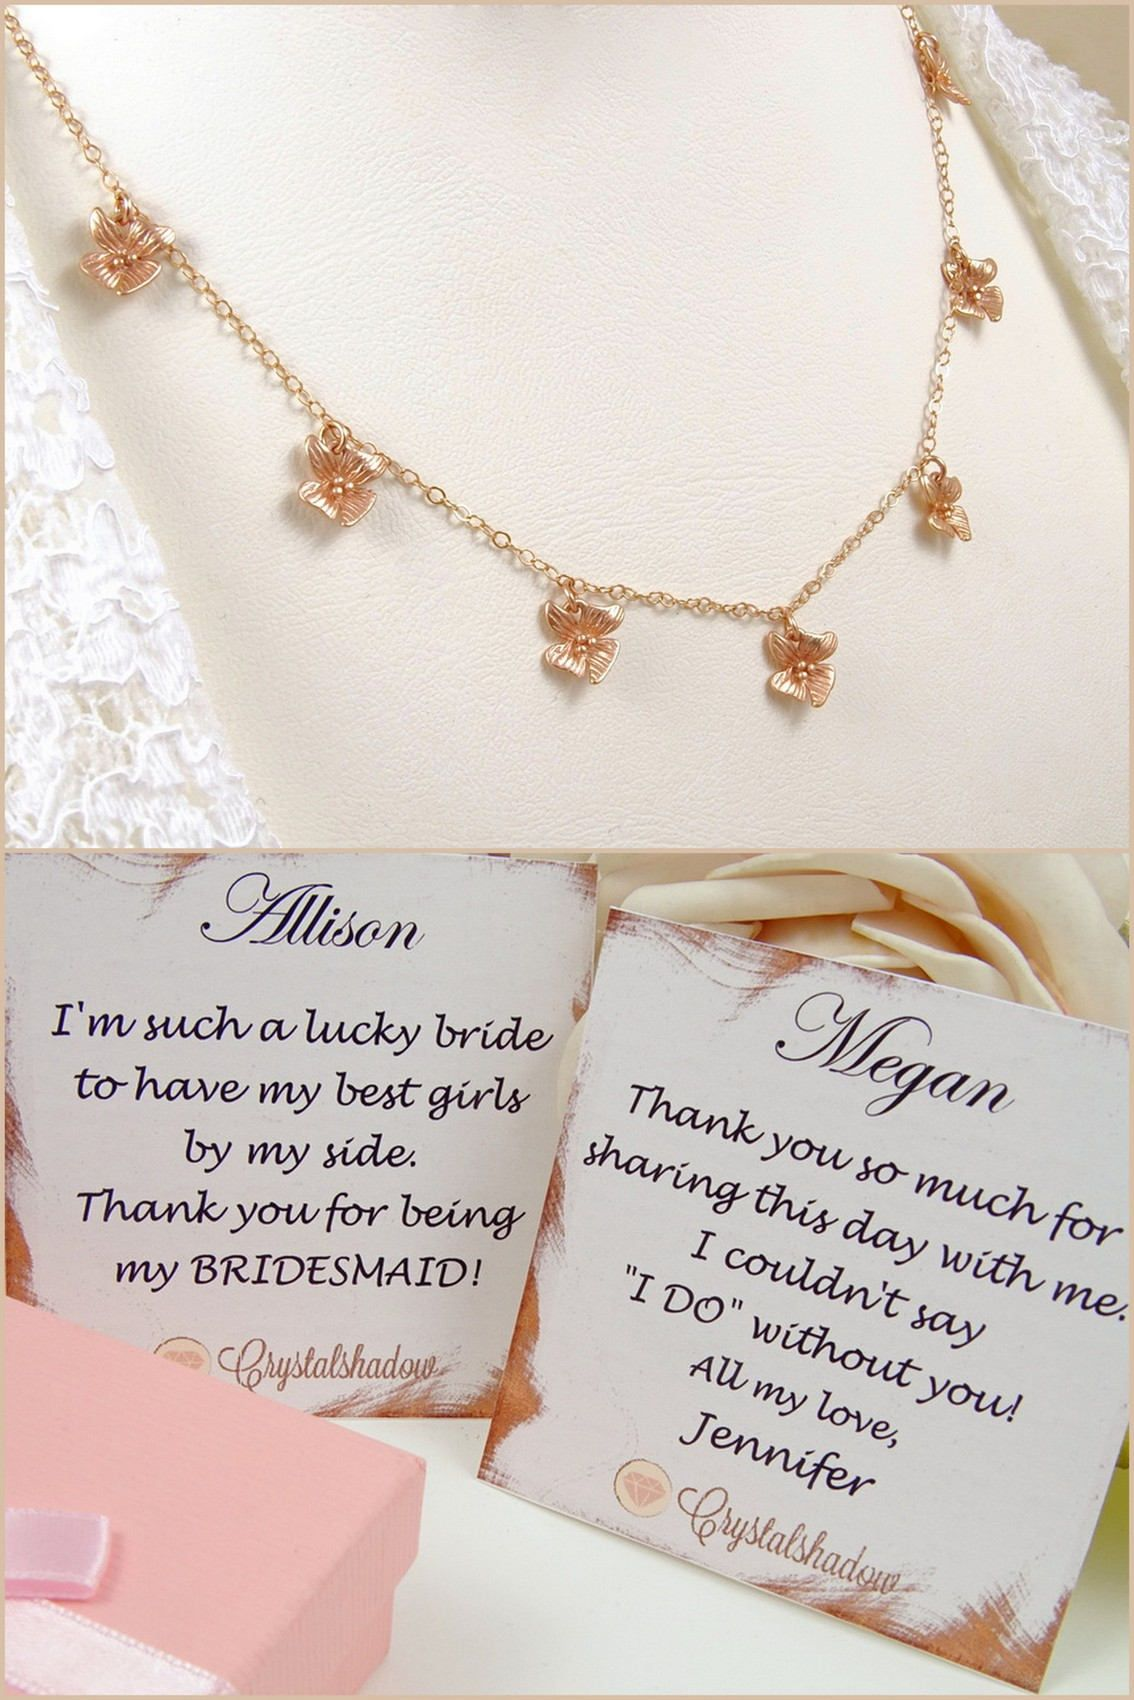 Rose Gold Necklace Dainty Tiny Orchids Multi Charm Necklace Perfect Gift Ideas For Her Https Www Etsy Crystal Necklace Pendant Dating Anniversary Gifts